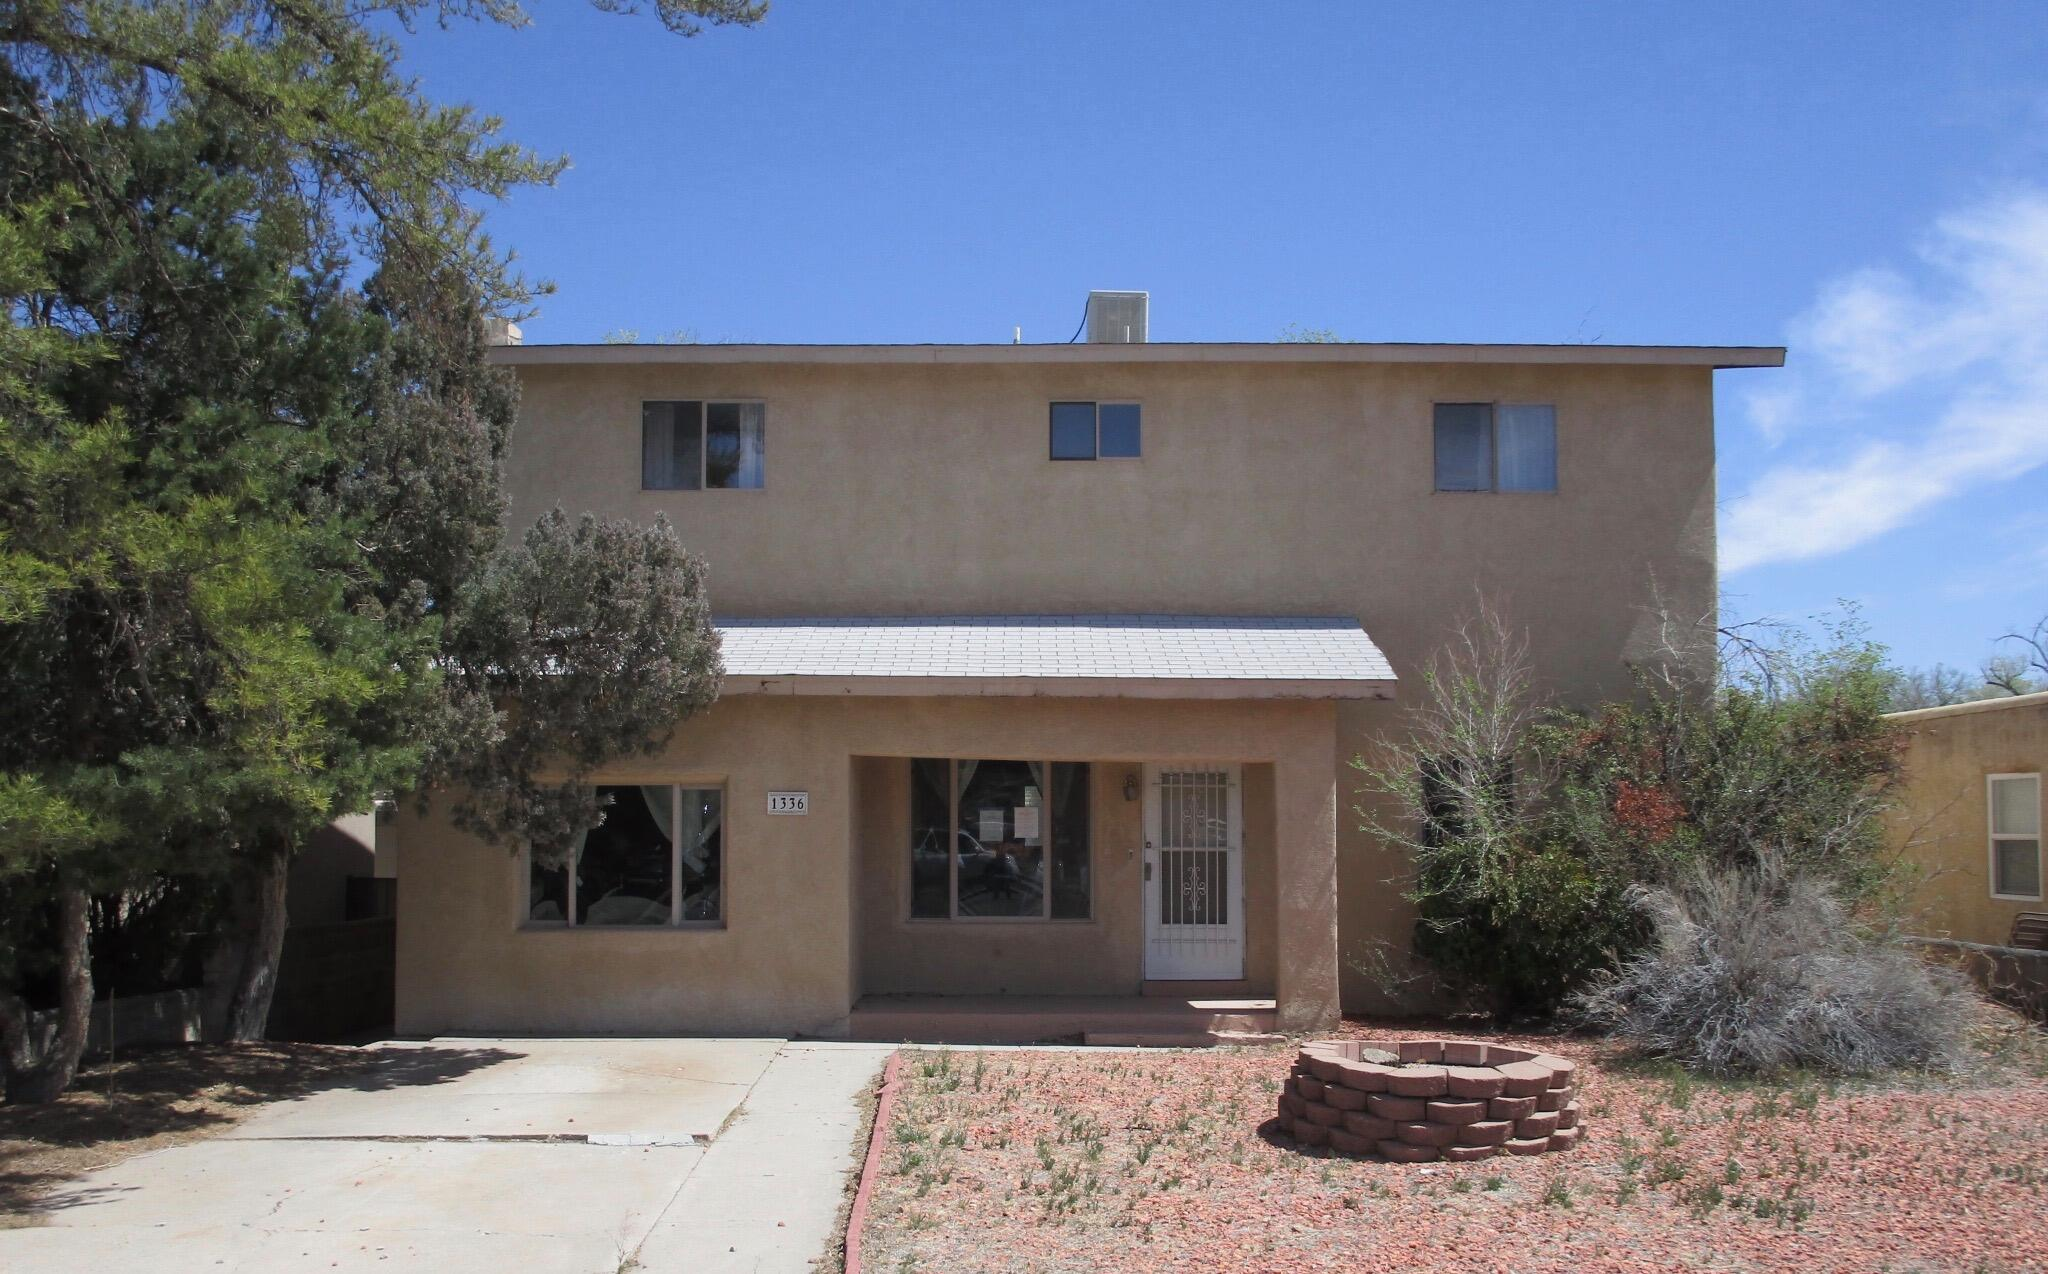 WILL NOT LAST!!!  Unique property has Guest House/In-Law Suite & Basement only blocks too UNM. The Main house on first floor has 3 bedrooms, 2 baths, and 2 living areas. Then, with a separate entrance, upstairs there is a COMPLETE other living quarters! Upstairs has 2 bedrooms, 2 baths, and a large living area with kitchenette/wet bar area, and dining room! Perfect for a mother-in-law quarters, guests, or Rental. But wait... there's more! A large backyard with storage shed along with an approx. 380 sqft. unfinished basement. You will not find another property like this in such a cool neighborhood.***No warranties or guarantees expressed or implied! Buyer to pay for their own Inspections for Buyers knowledge only!*